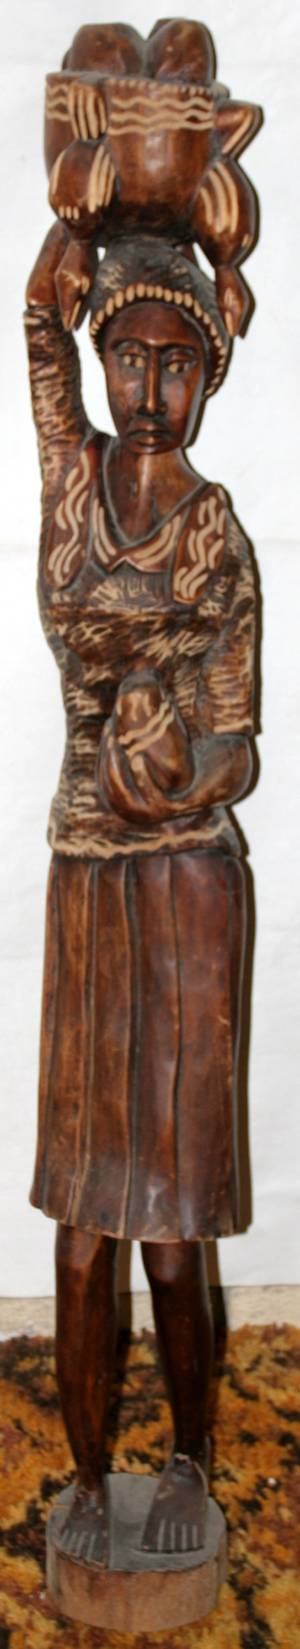 060180 AFRICAN CARVED WOOD FIGURE OF A WOMAN